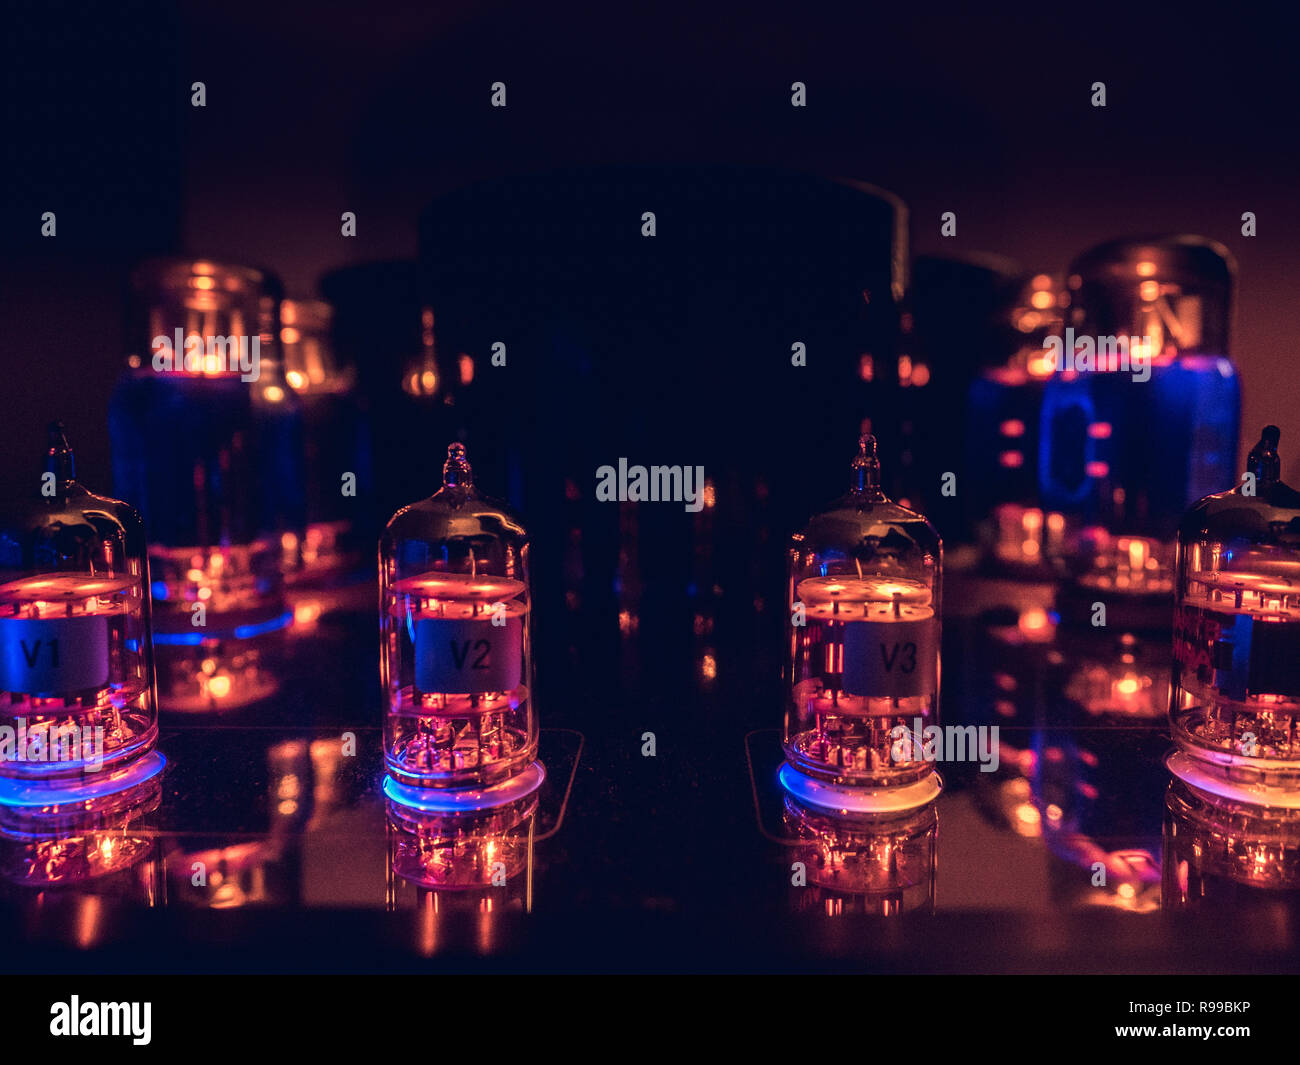 Vacuum tubes on a row, glowing in the dark. Warm colors contrasting a blue glow. - Stock Image